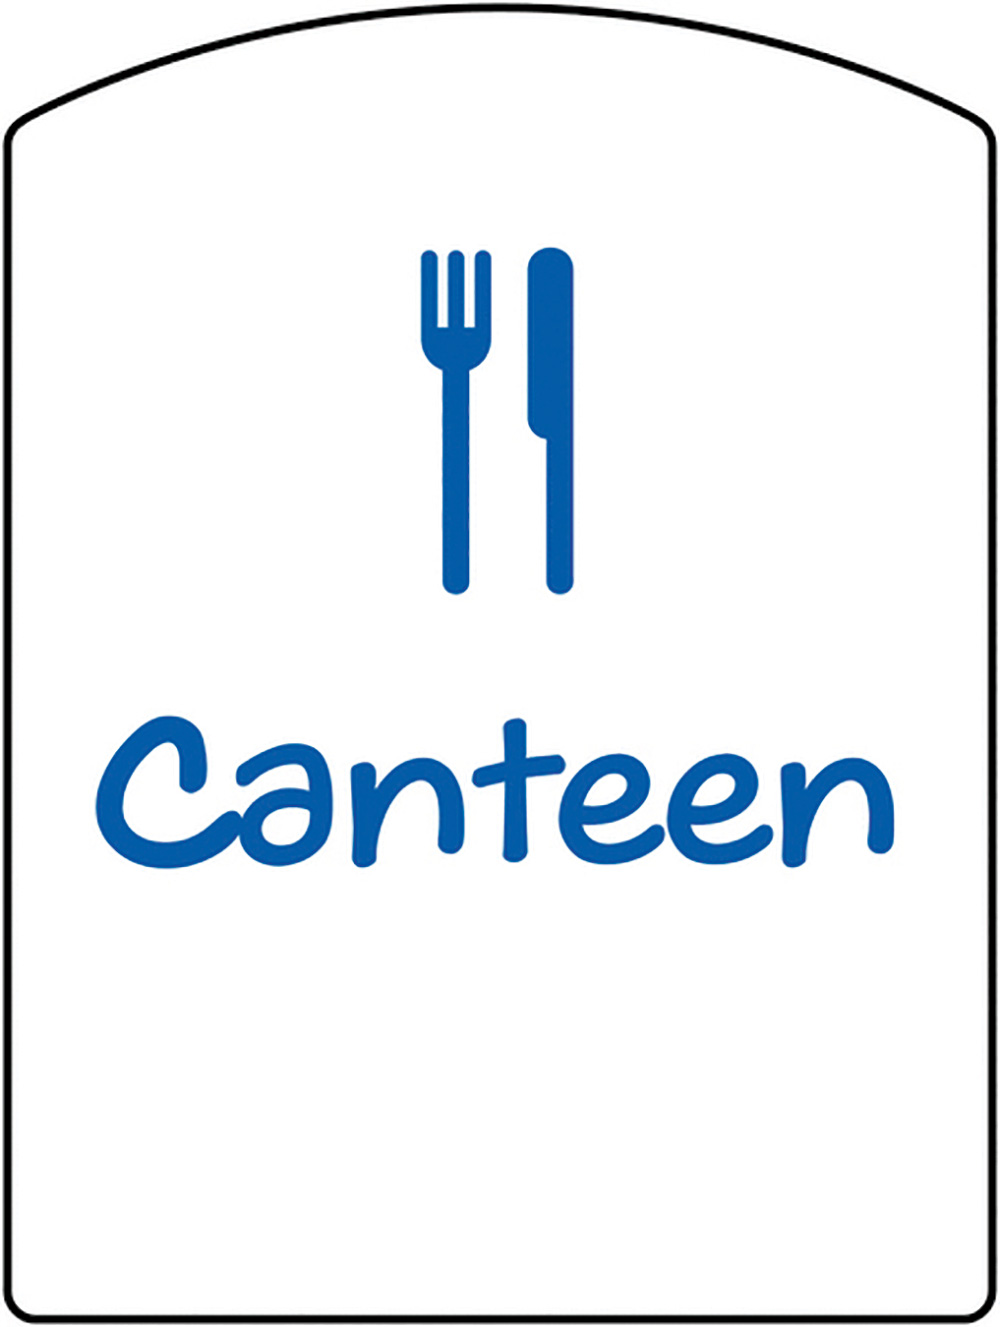 Canteen School Sign 400x300mm 1.2mm Rigid Plastic Safety Sign